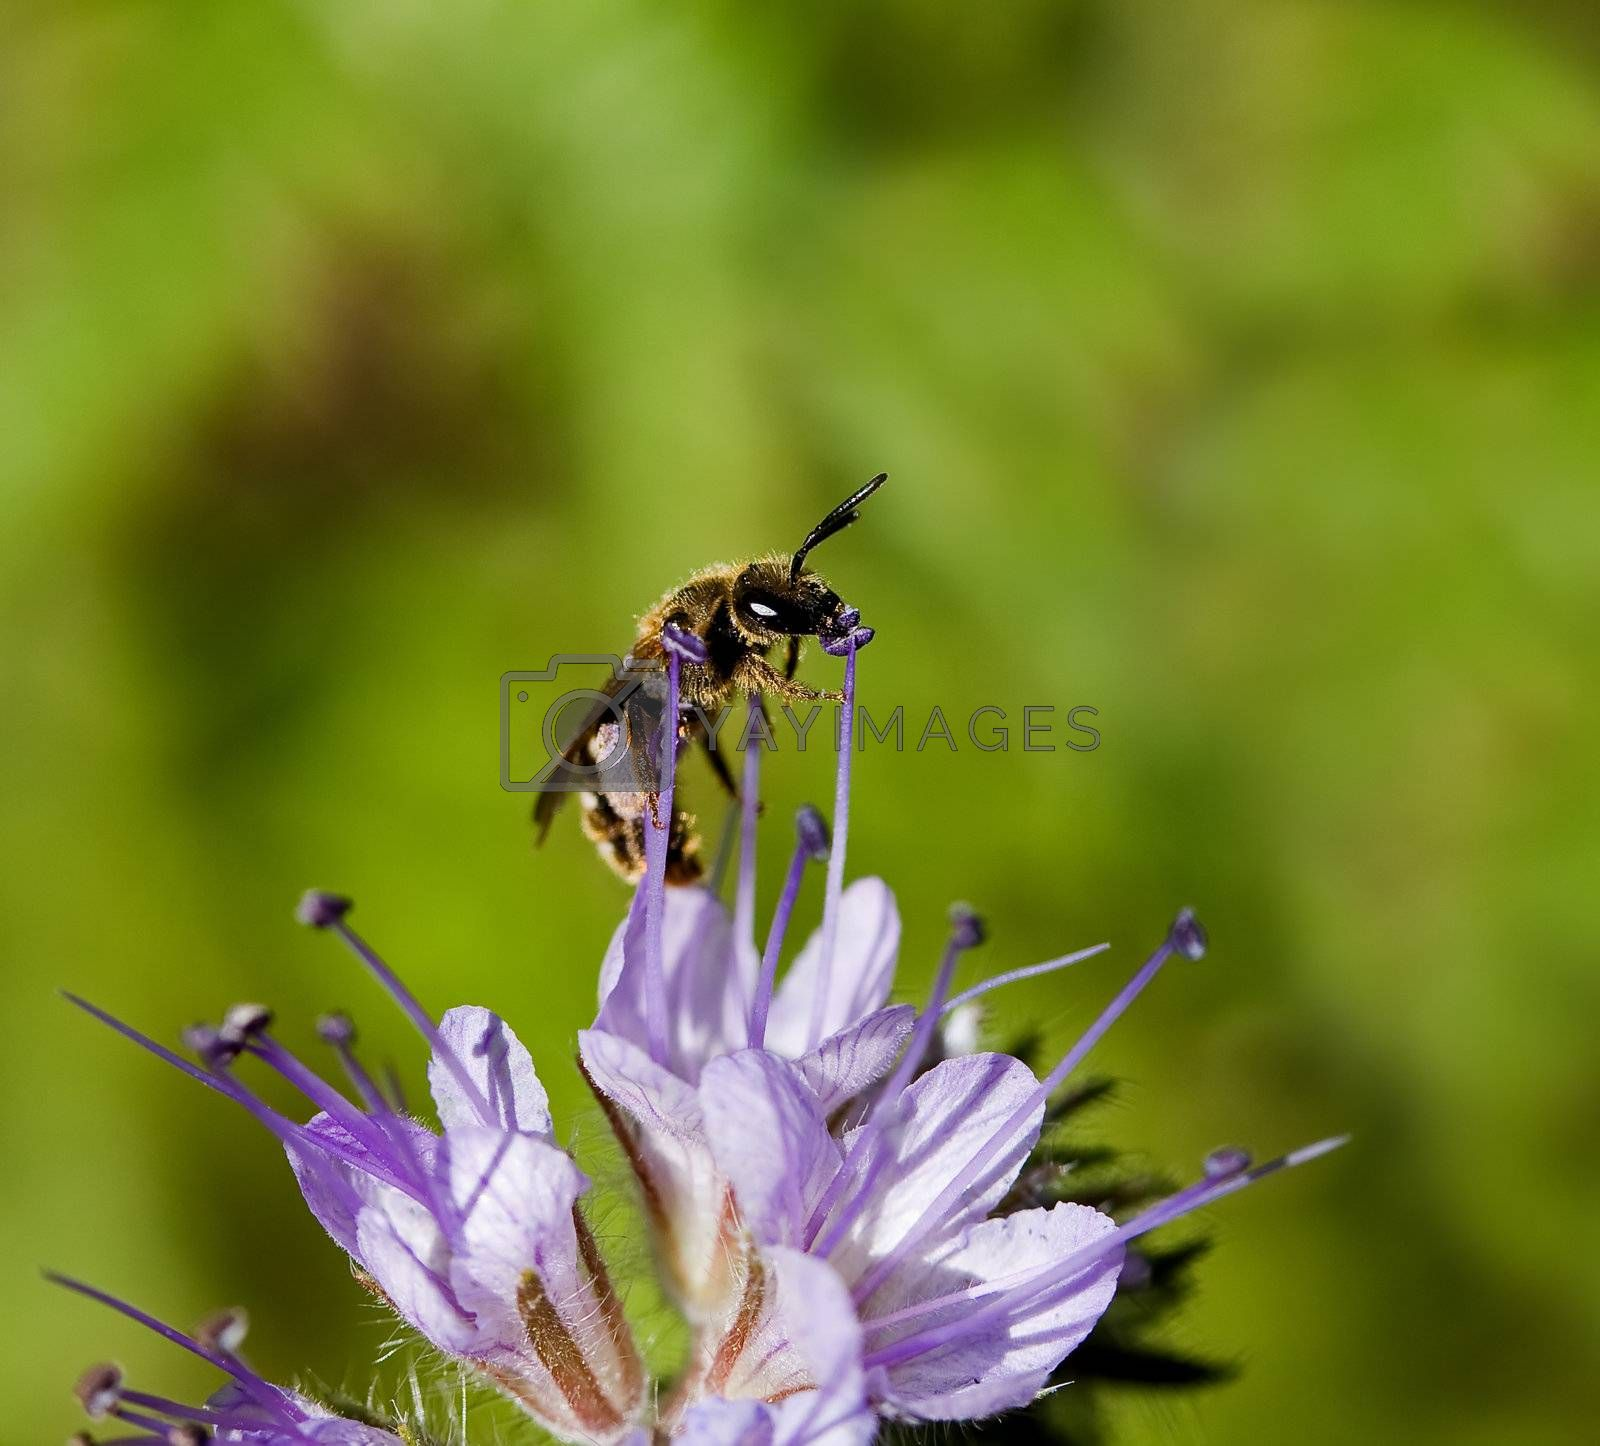 Royalty free image of Solitary Bee on Phacelia flower by SueRob